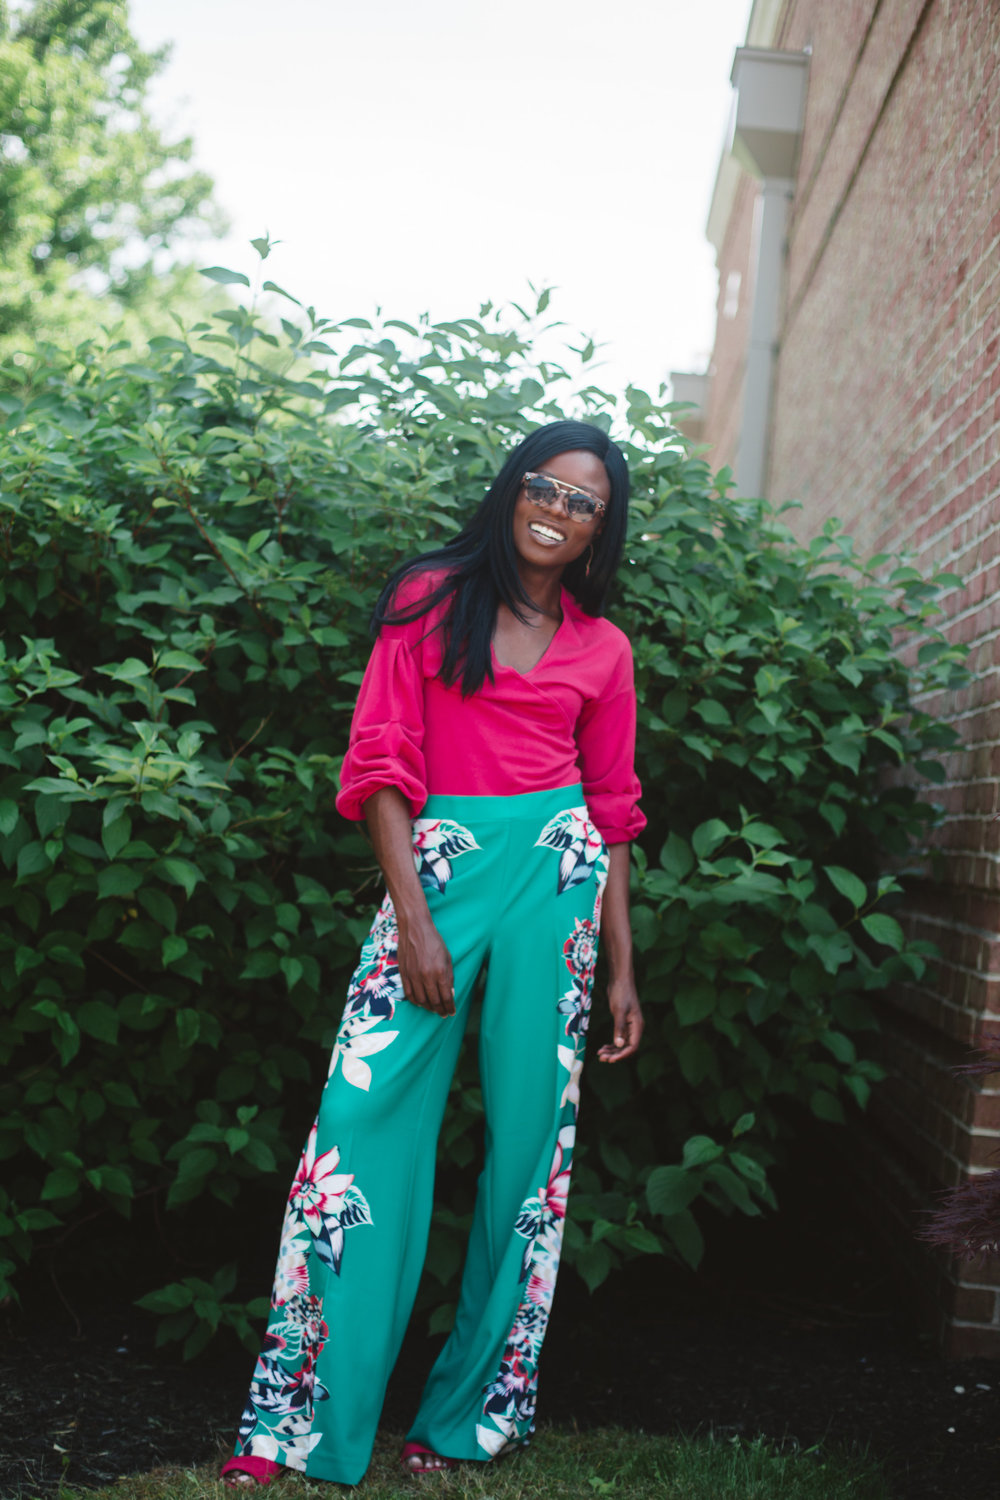 Top: 7th Avenue - Puff-Sleeve V-Neck Sweater  here   Bottoms: Gabrielle Union Collection - Floral Palazzo Pant  here